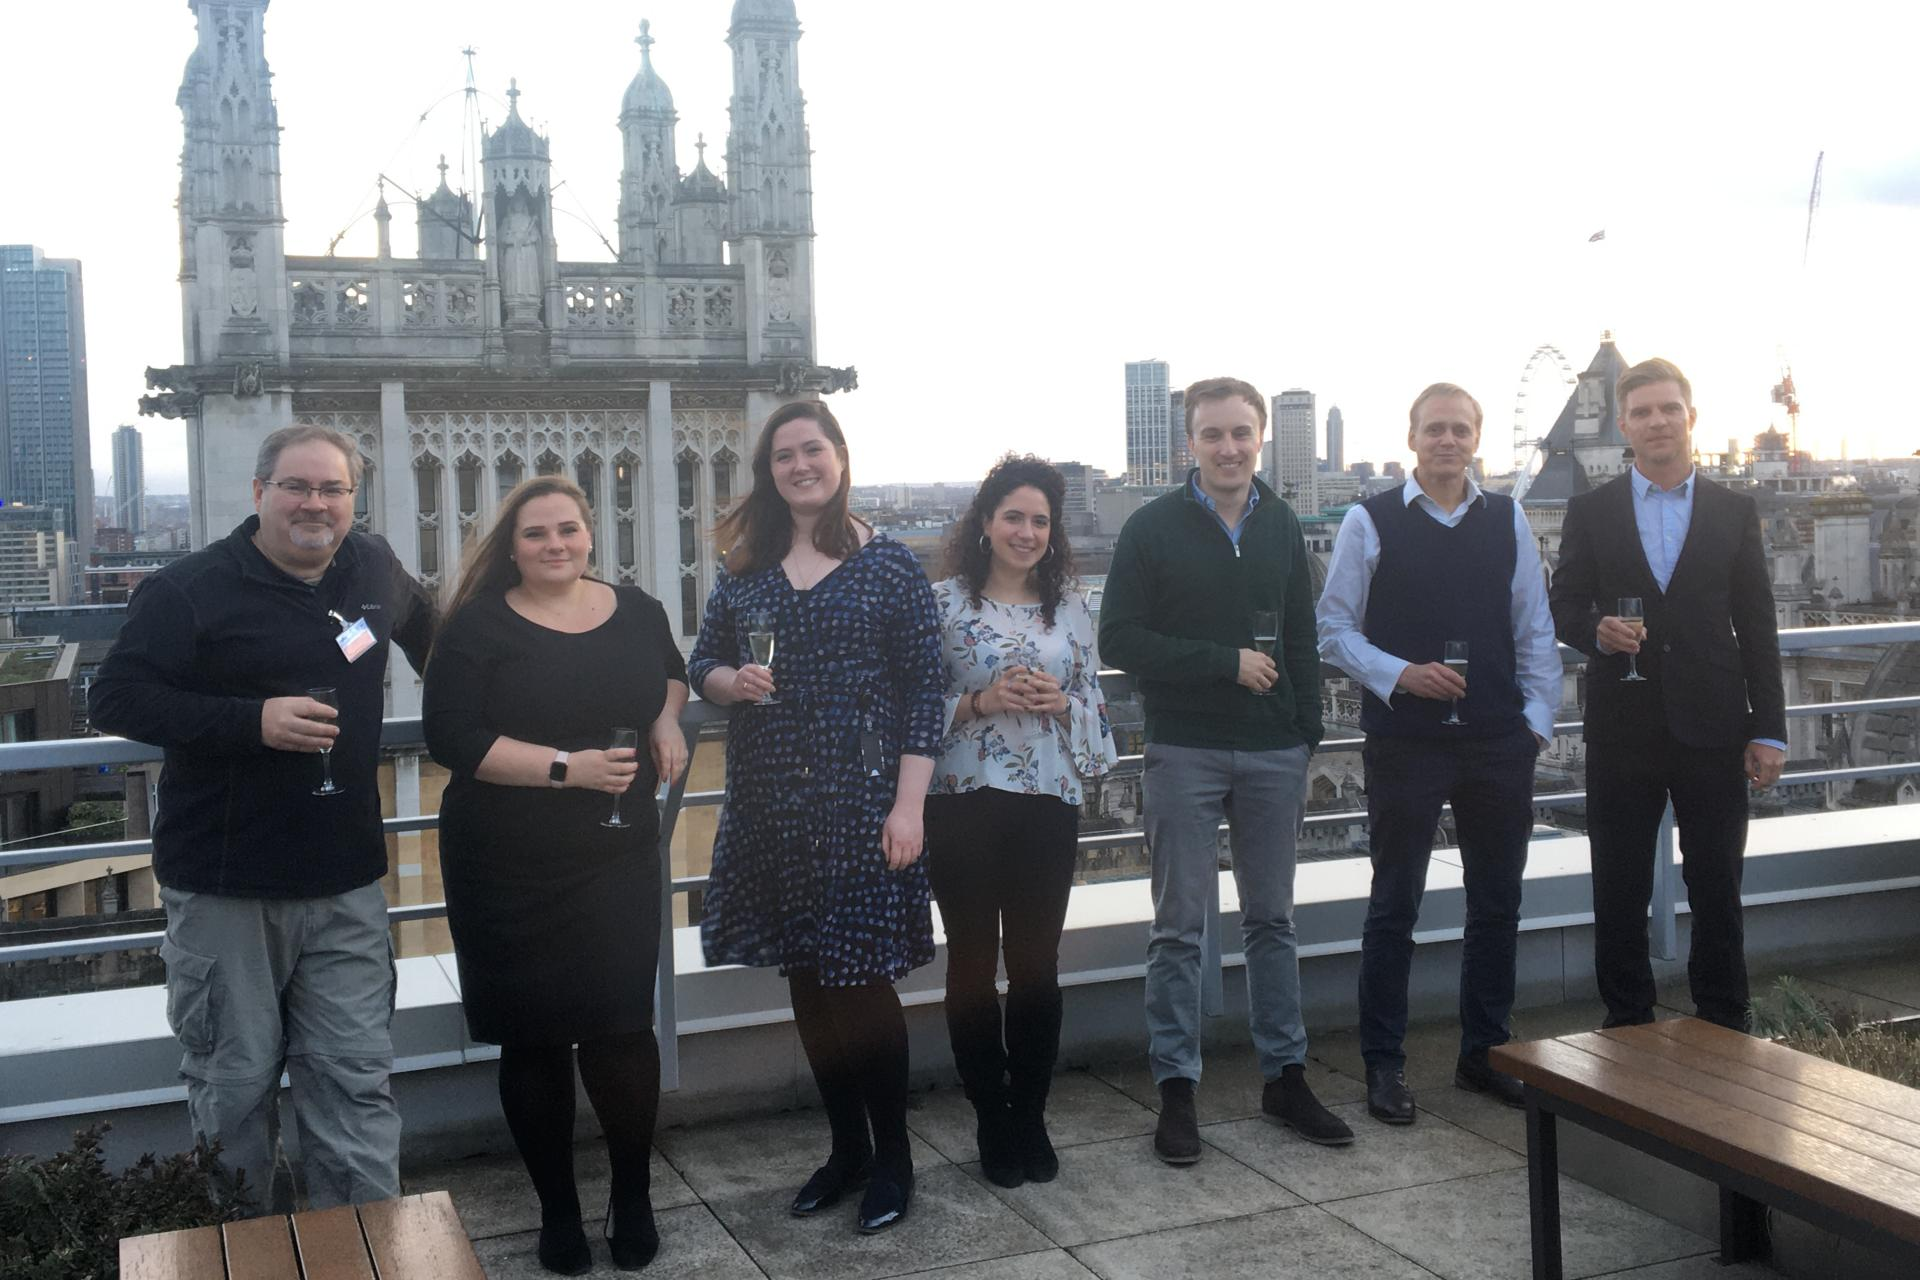 OCCRP journalists and their legal team in London. (Credit: OCCRP)